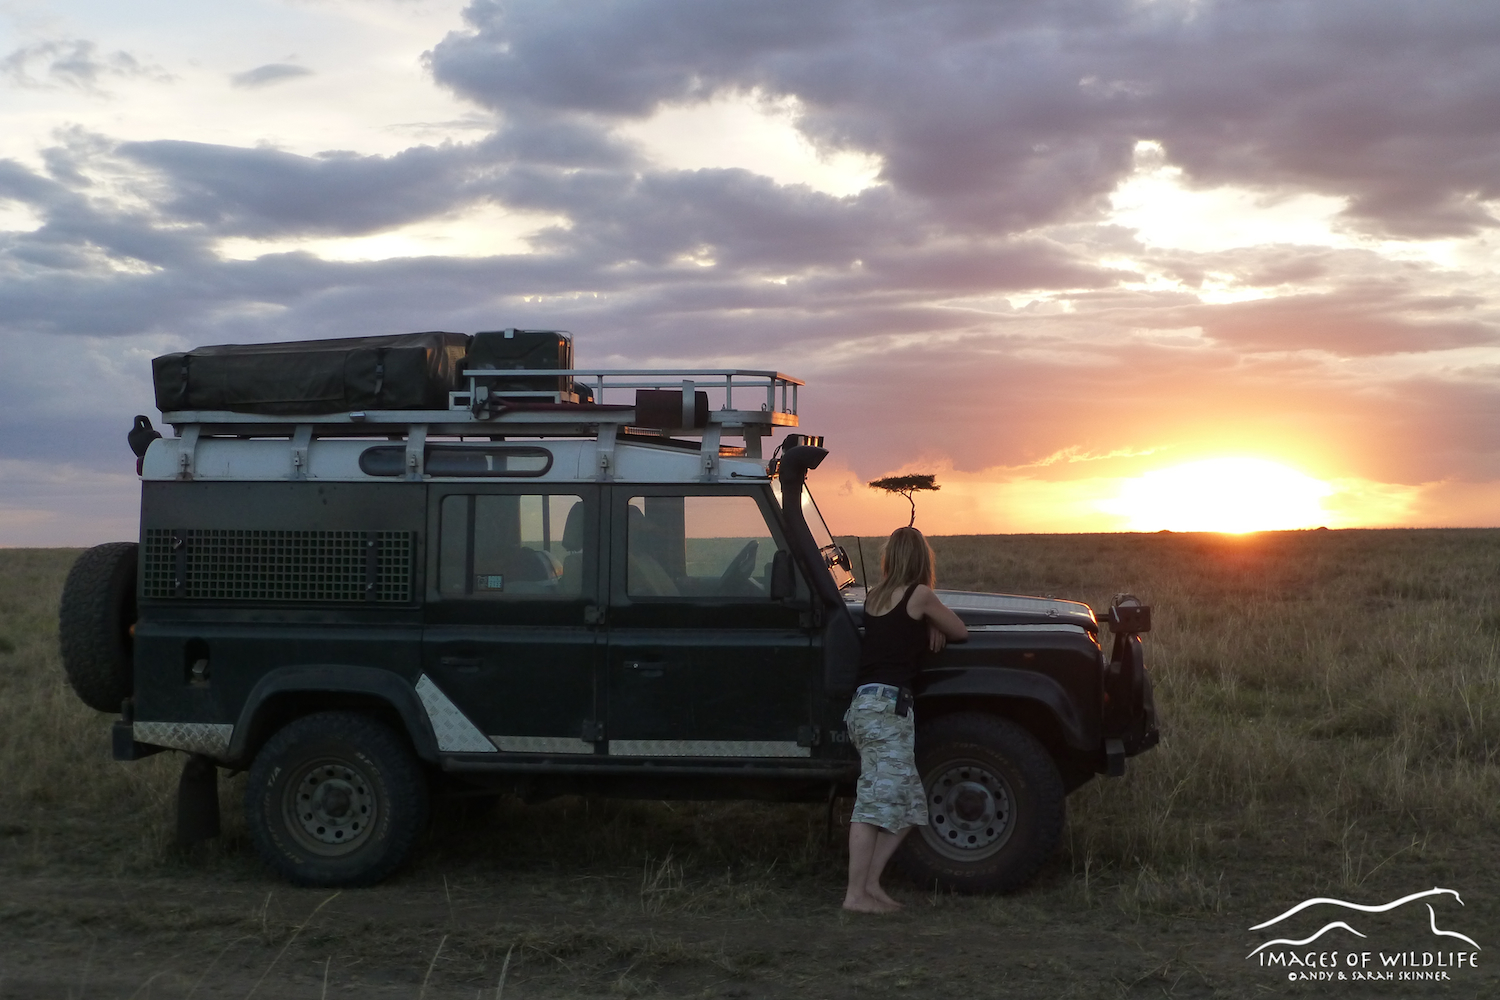 Sarah soaking up the African sunset, Maasai Mara, Kenya